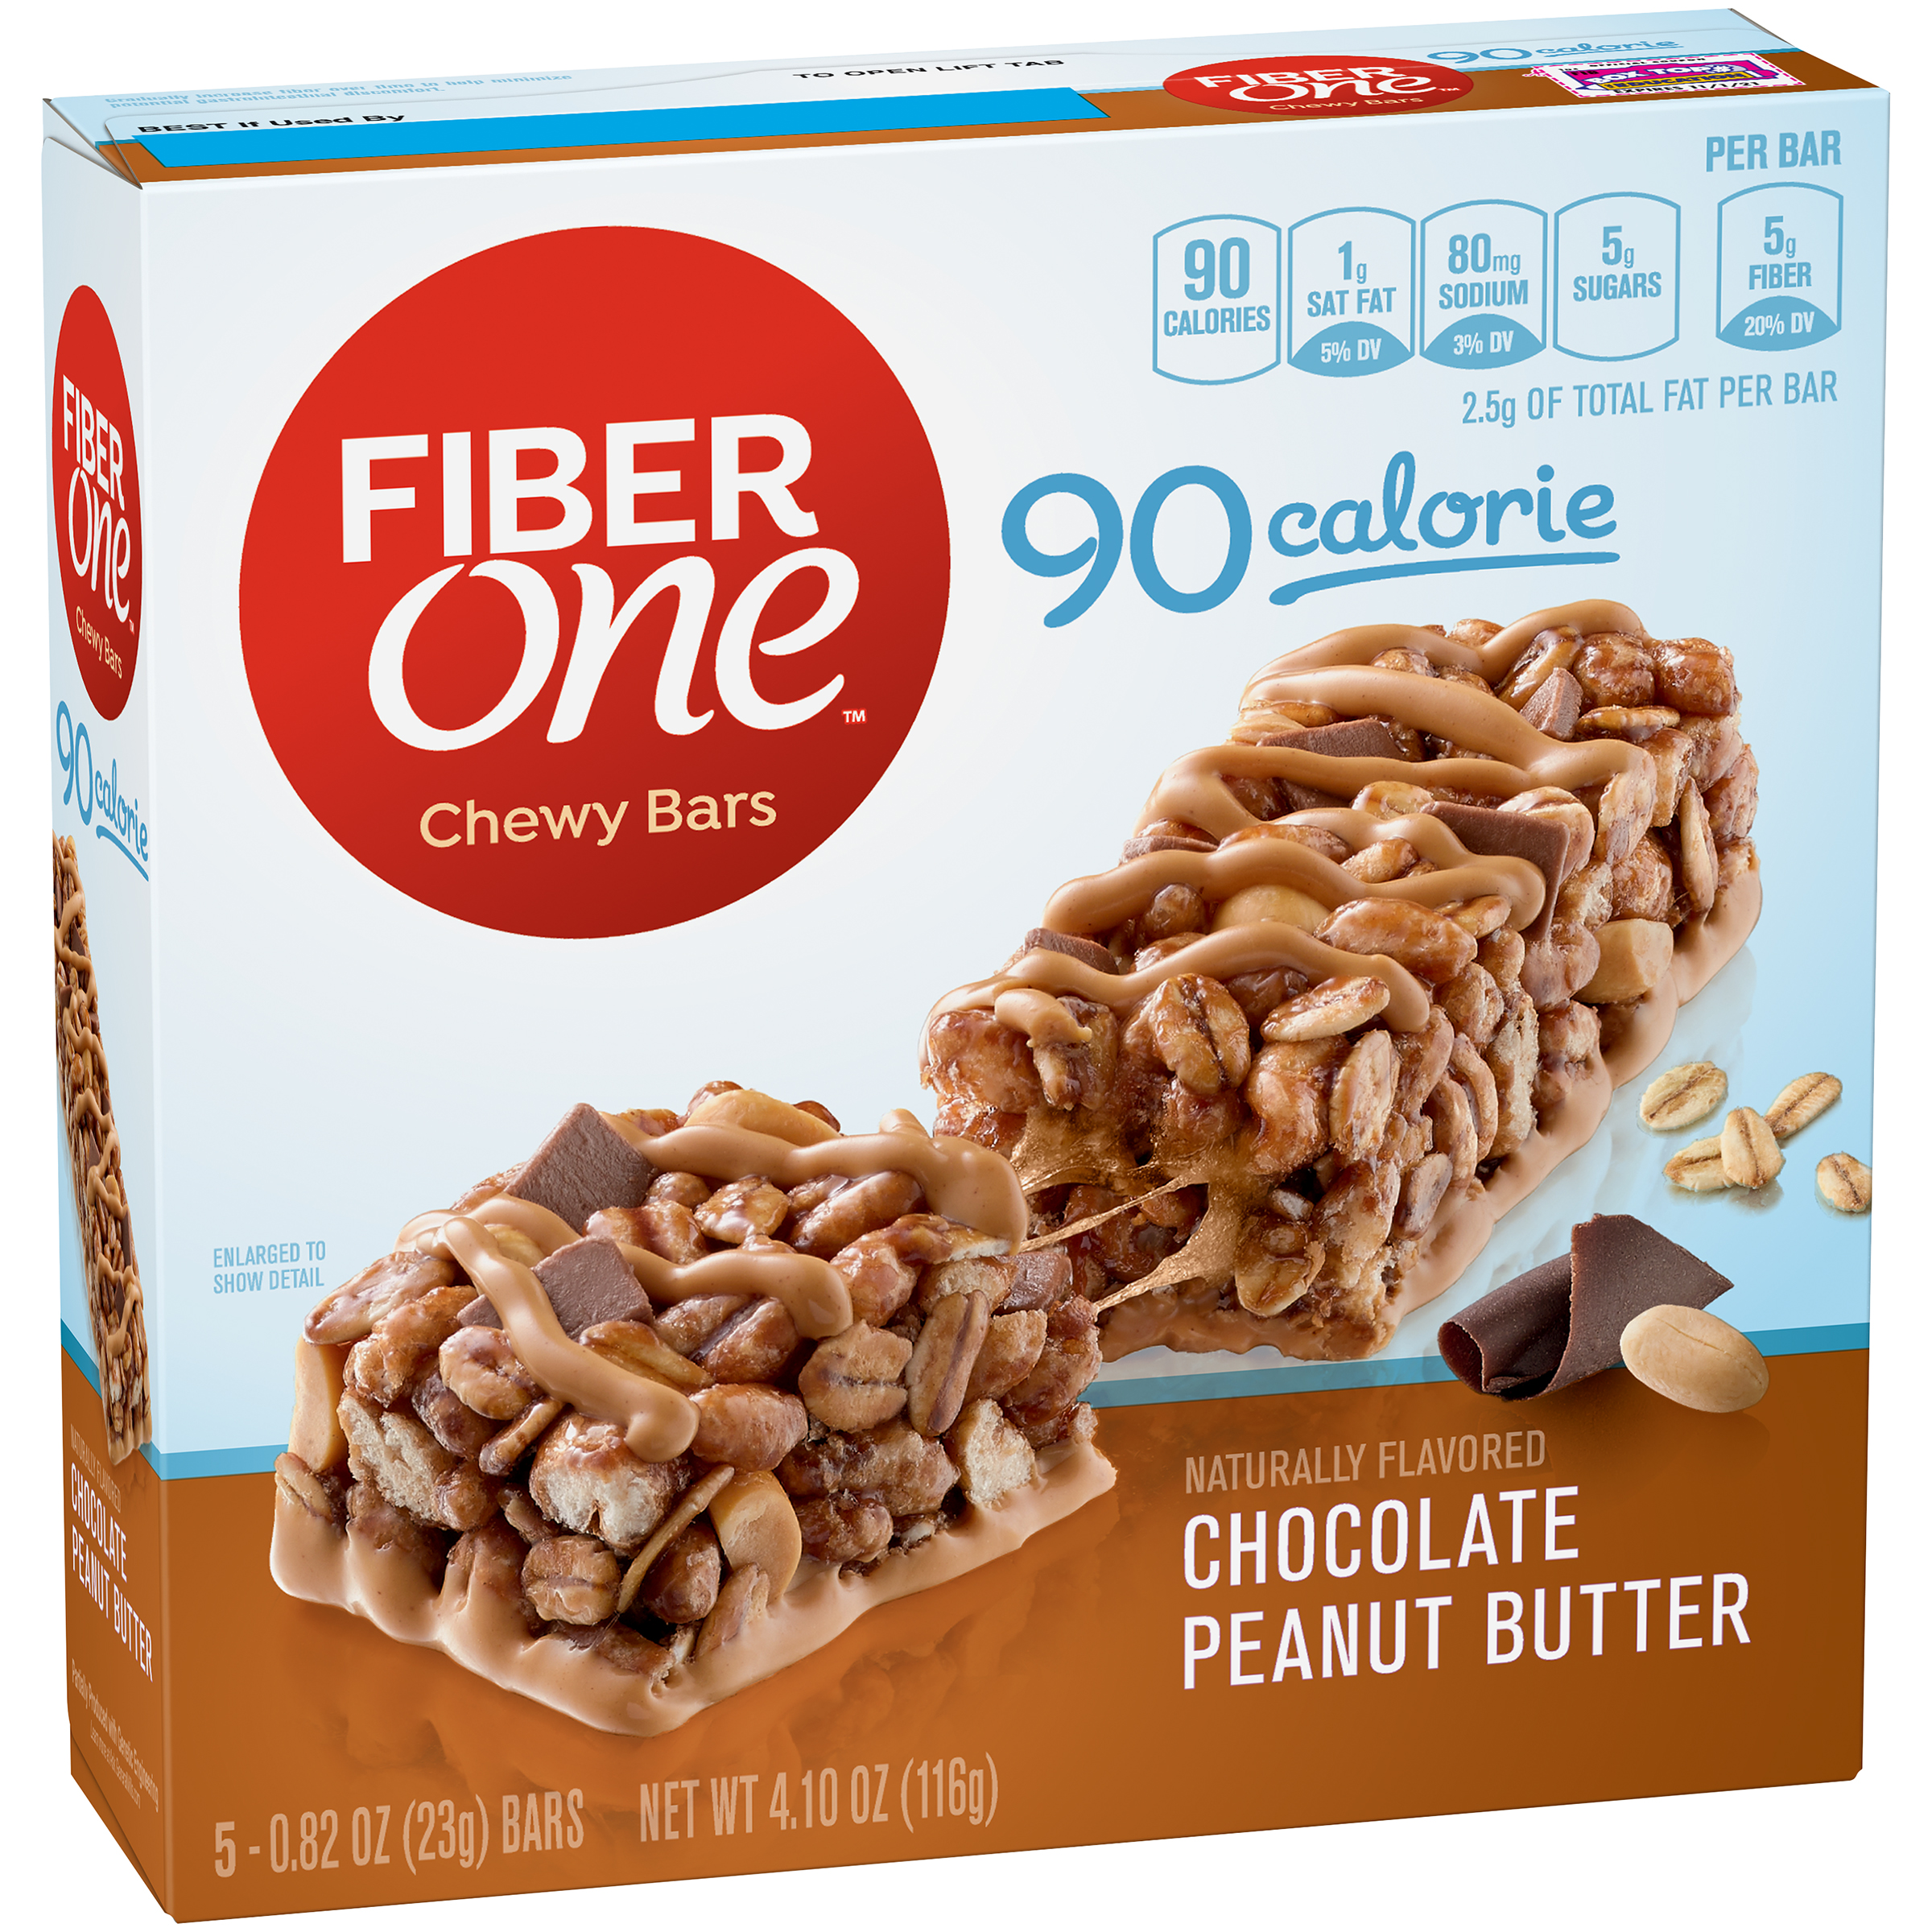 Fiber One 90 Calorie Bar Chocolate Peanut Butter 5 - 0.82 oz Bars